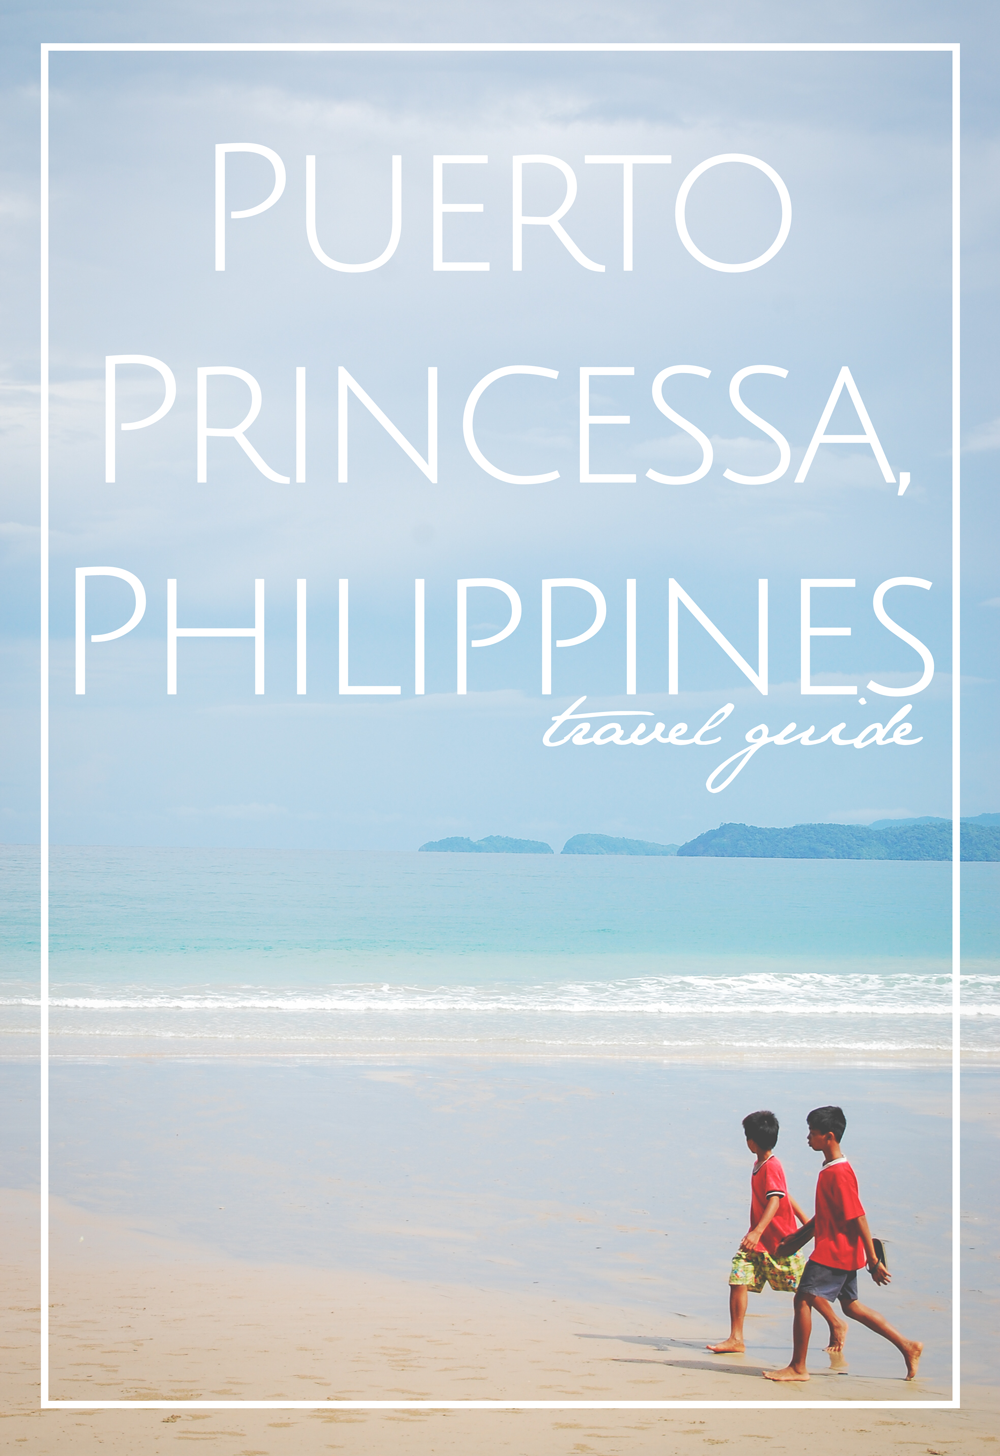 Philippines Puerto Princesa Travel Guide